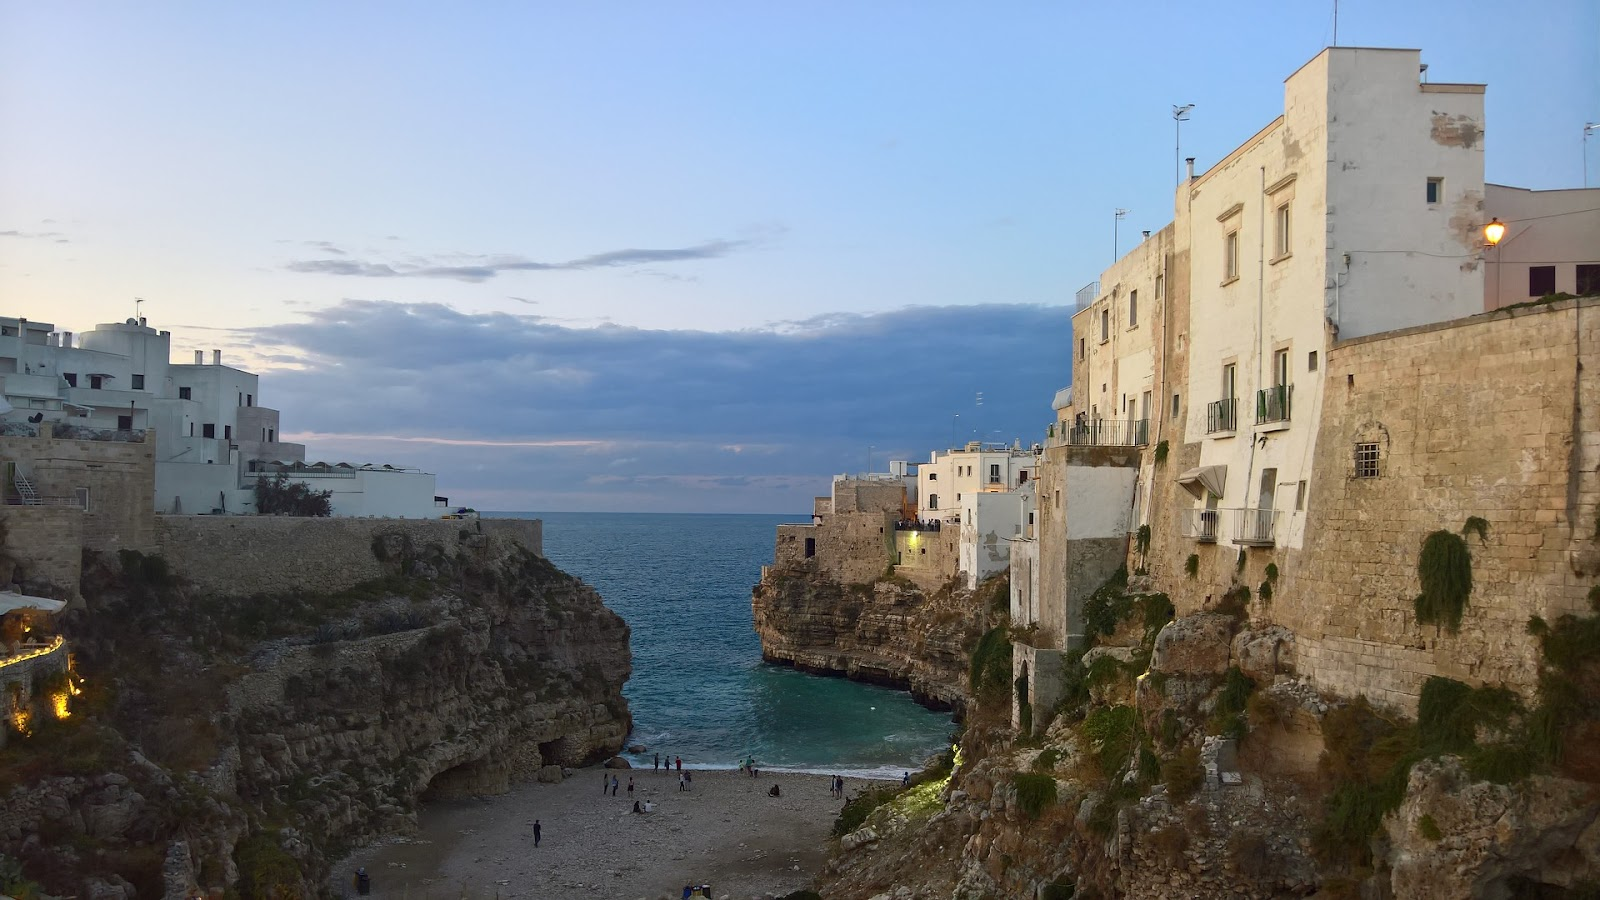 beautiful small italian sandy beach surrounded by whitewashed buildings and cliffs blue sea near bari south of italy sunset